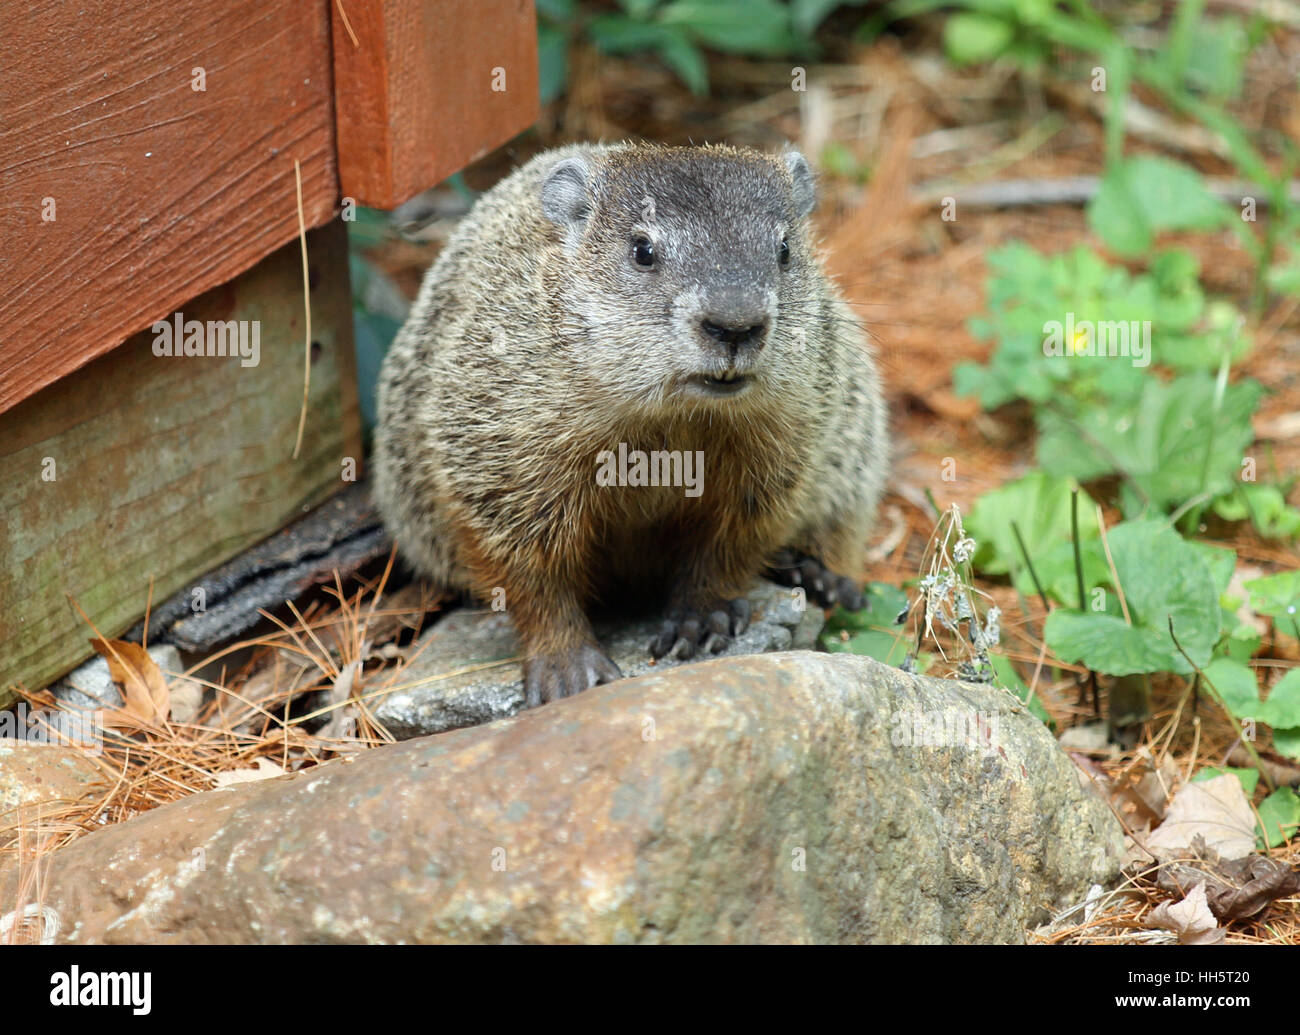 Groundhog (Marmota monax) with visible incisors sitting on a rock during a New England summer - Stock Image